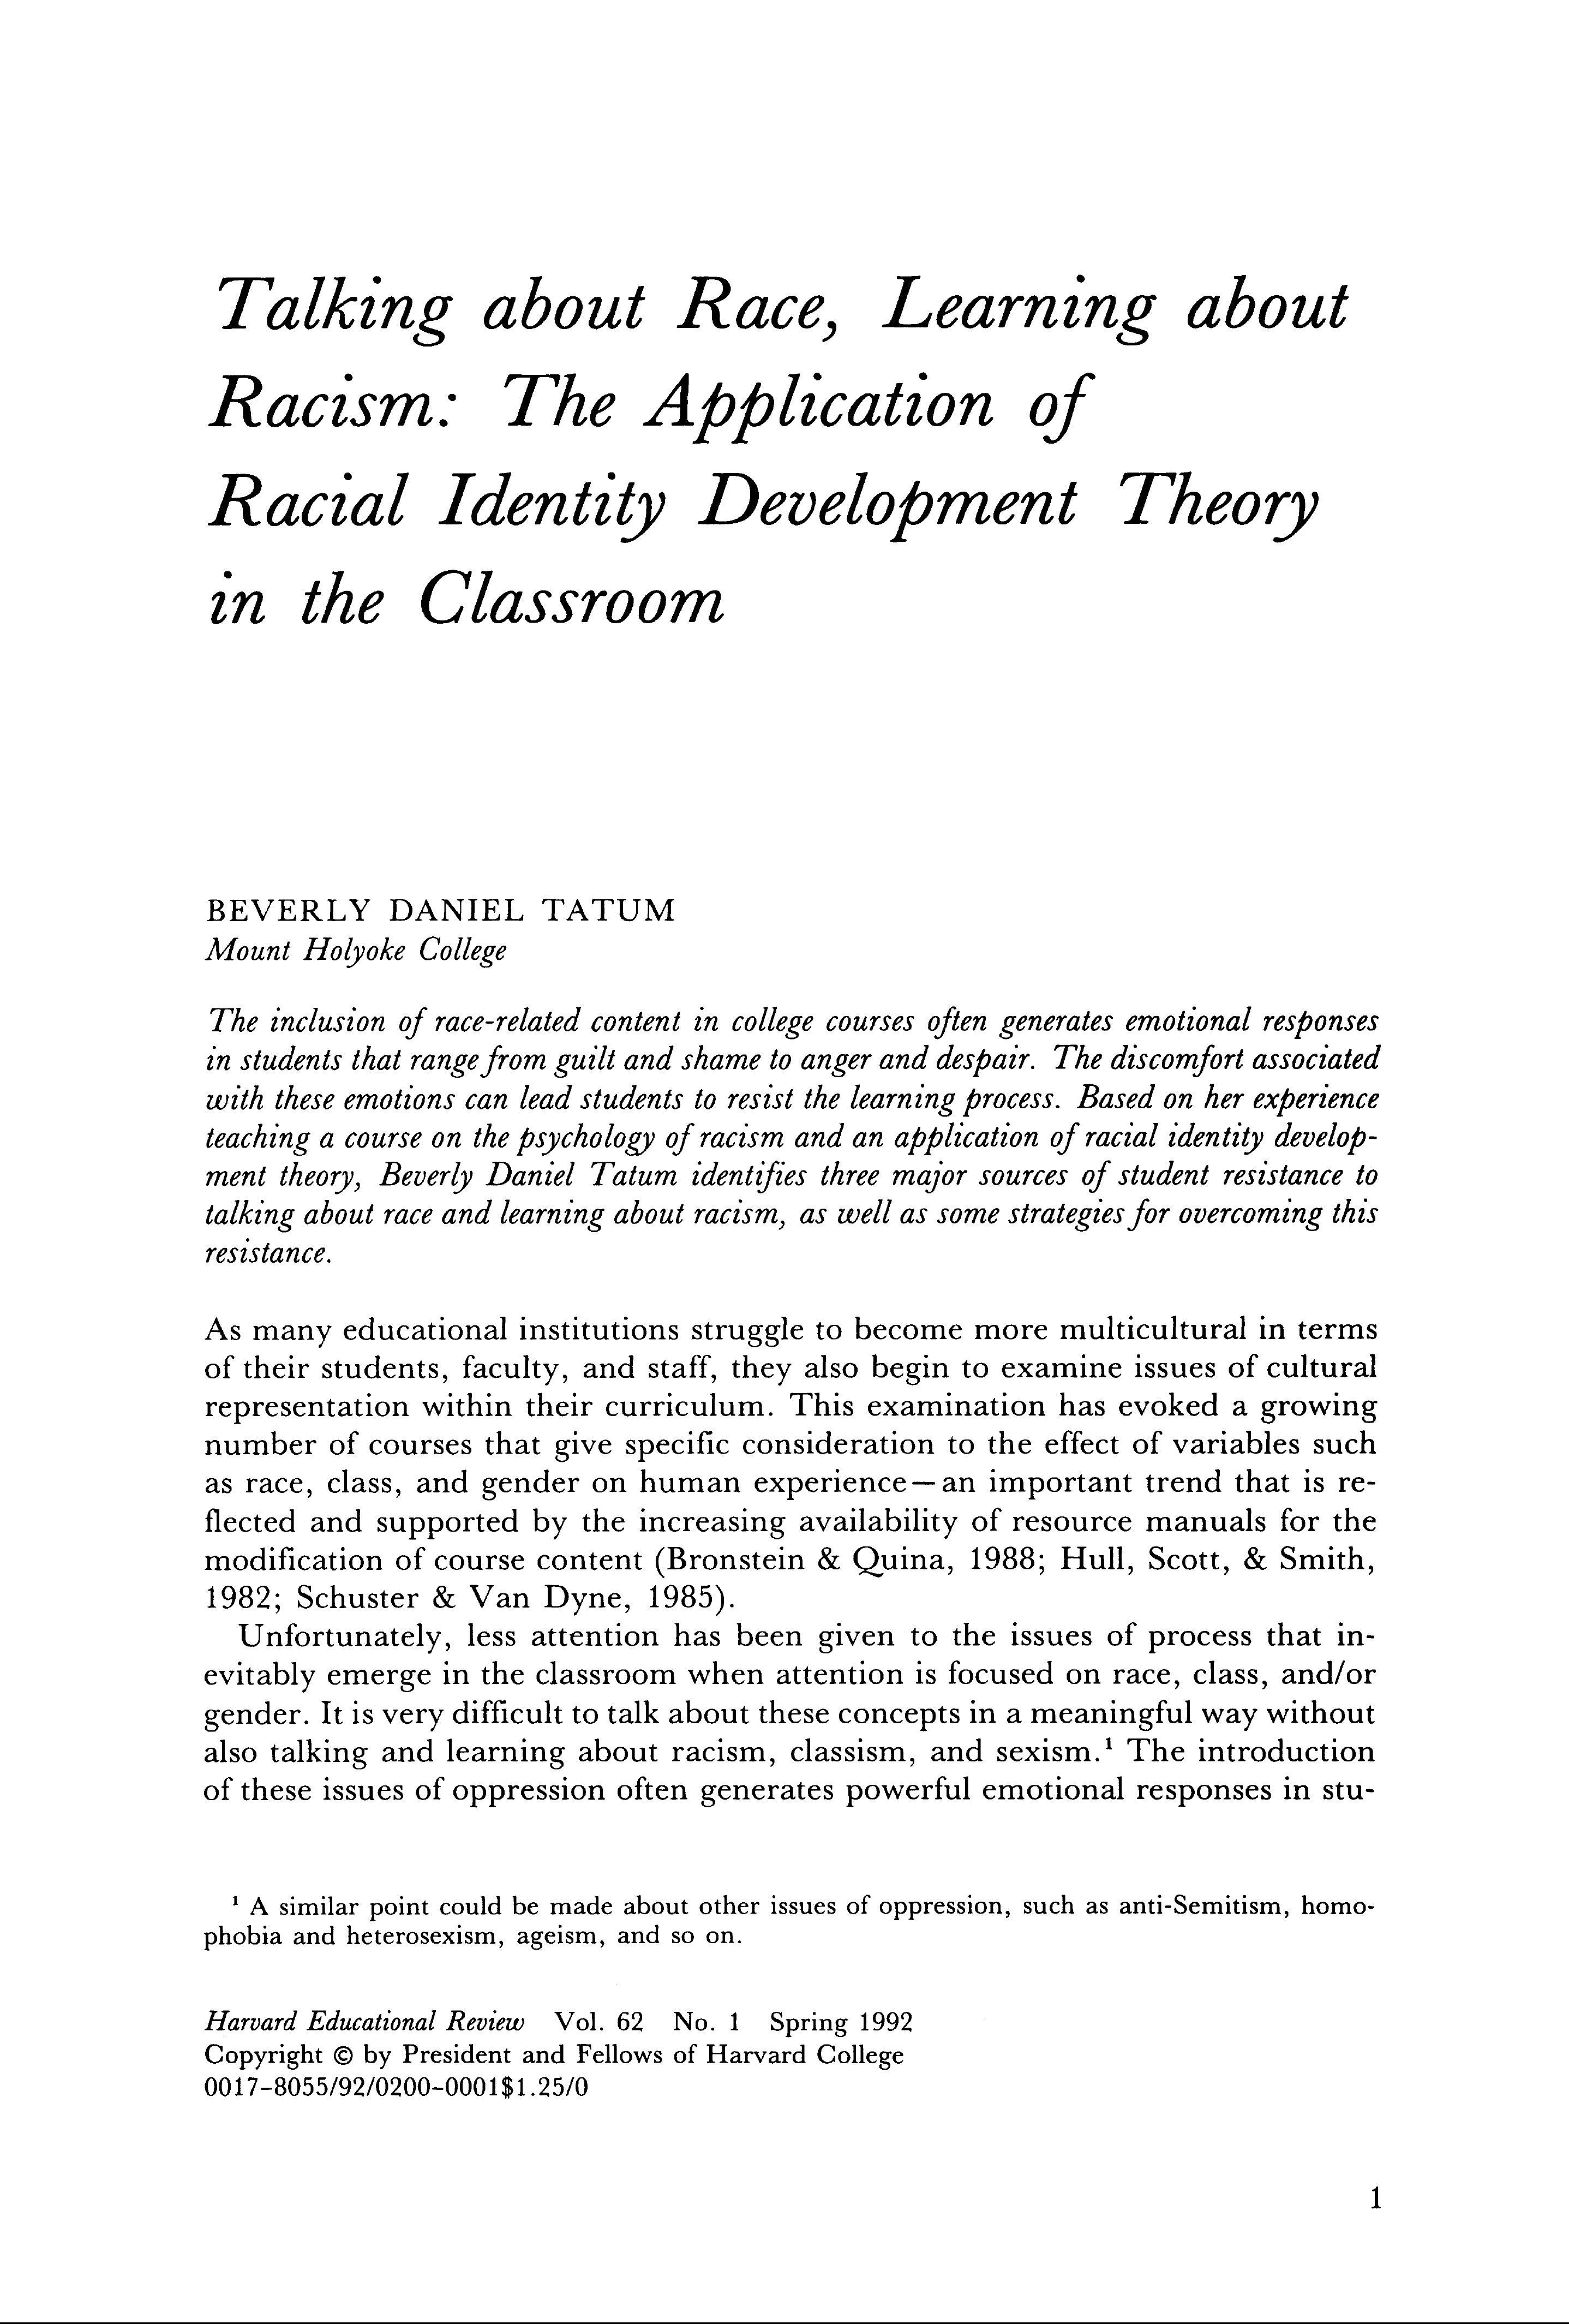 Talking About Race, Learning About Racism: The Application of Racial Identity Development Theory in the Classroom